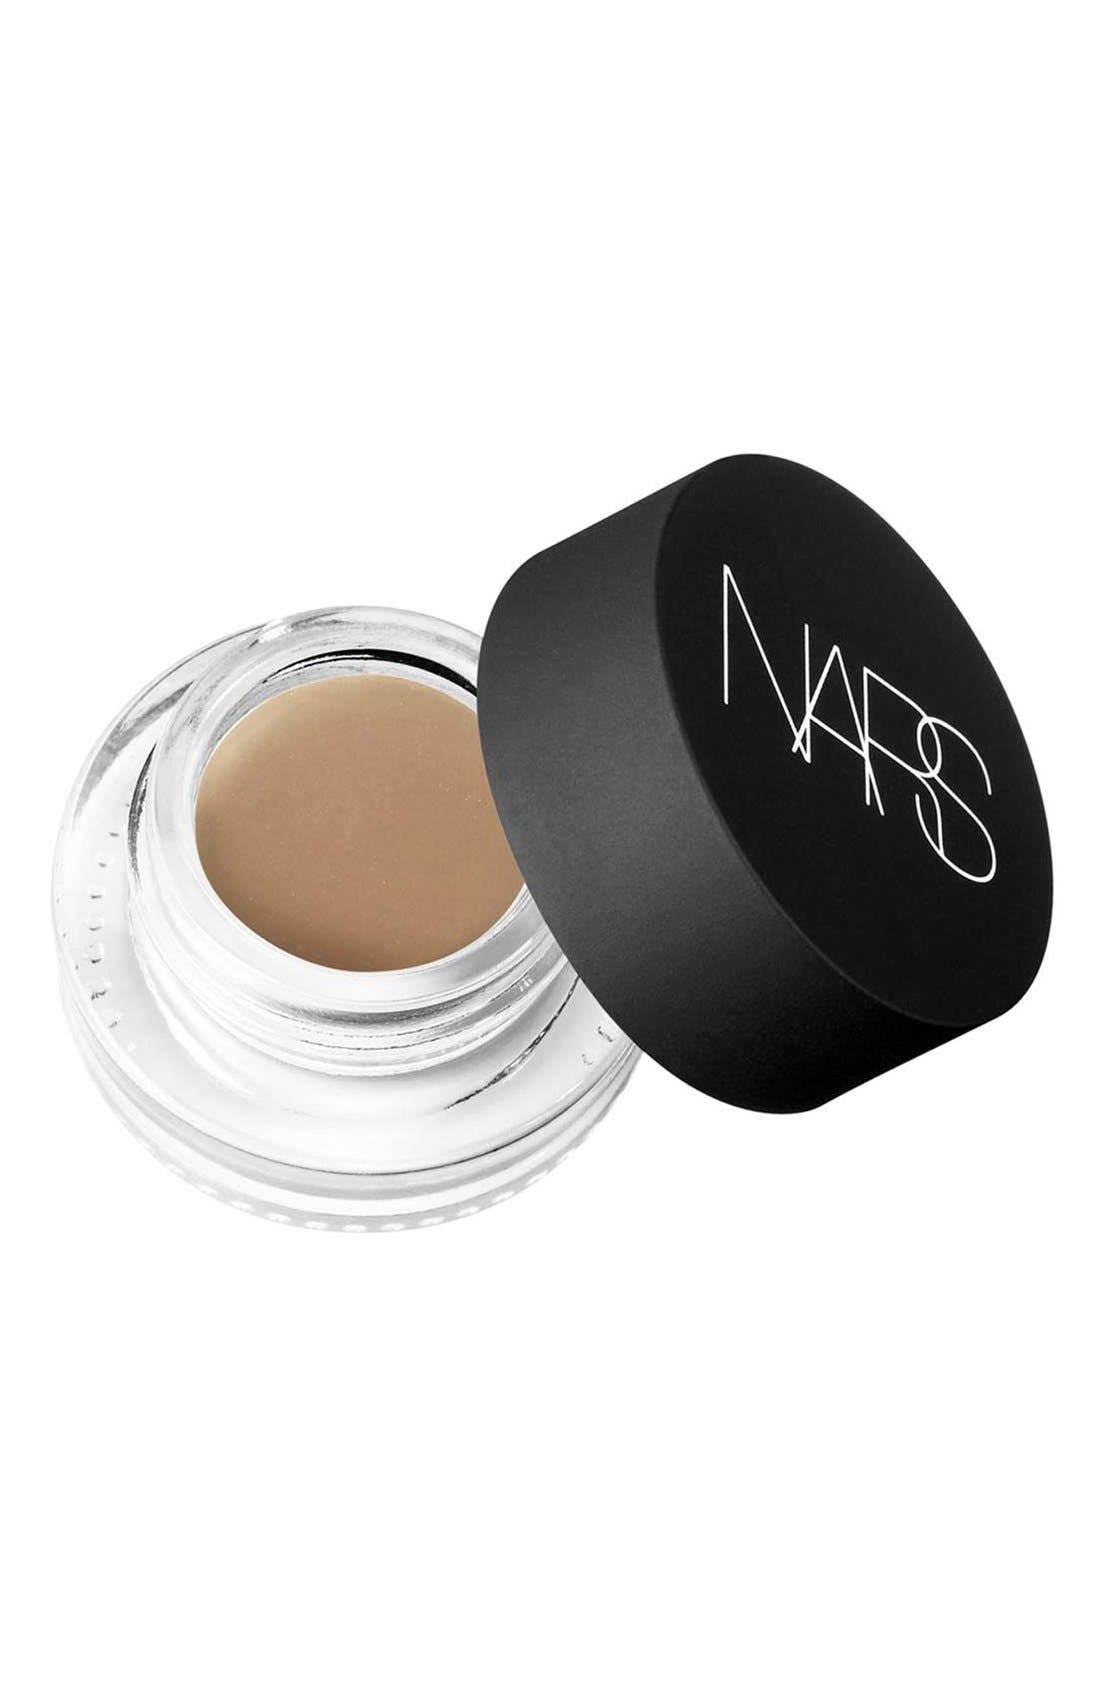 NARS Audacious Brow Defining Cream